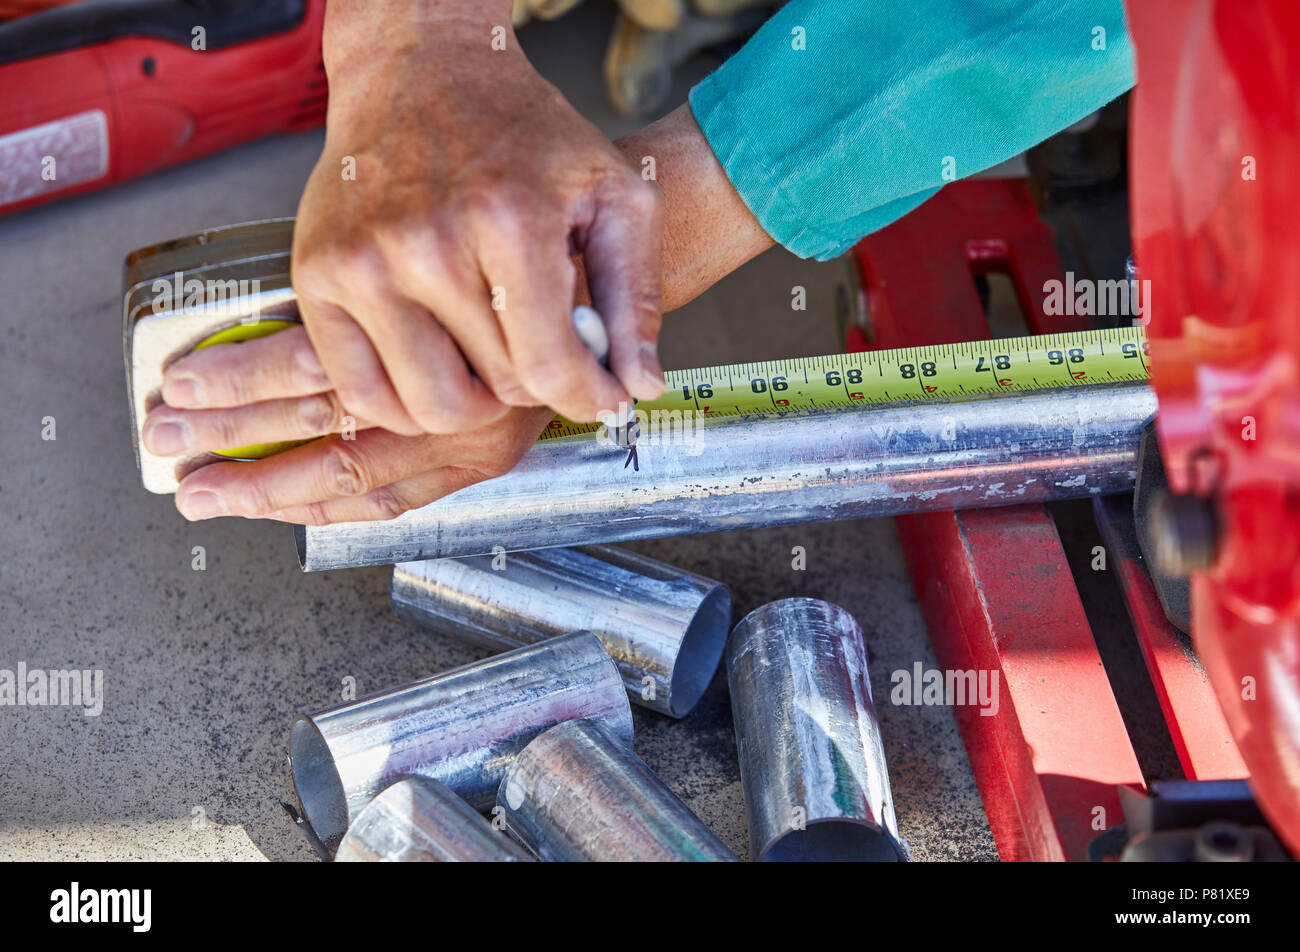 A construction worker marking the measurement on a galvanized steel pipe in preparation to cut it with a chop saw - Stock Image